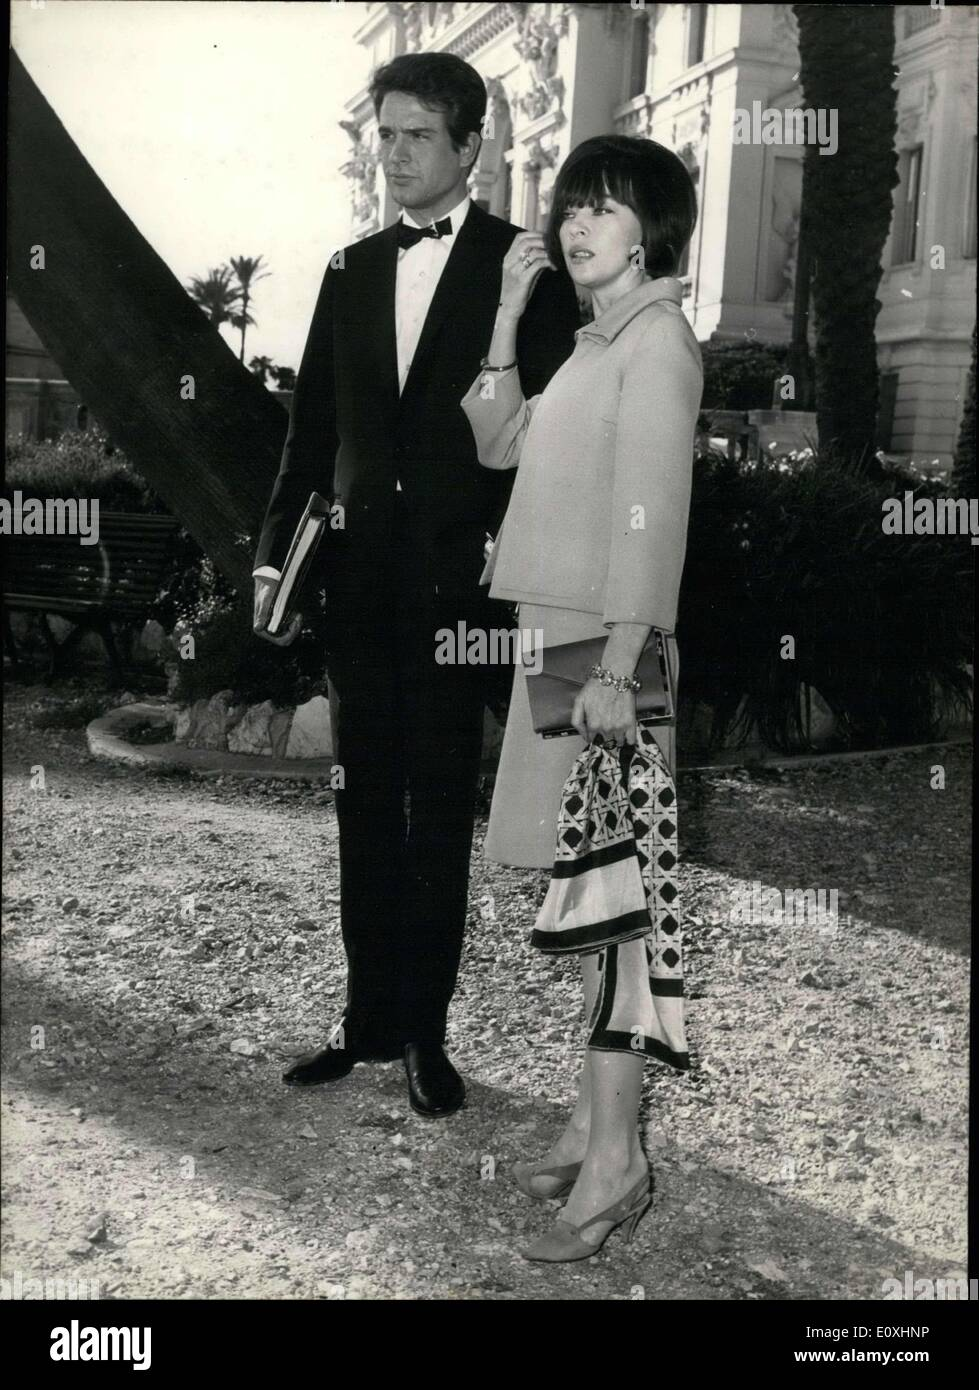 Nov. 03, 1966 - Leslie Caron and Warren Beaty walk in Monte Carlo on occasion of the movie ''Kaleidoscope'' showing at Monte6. - Stock Image